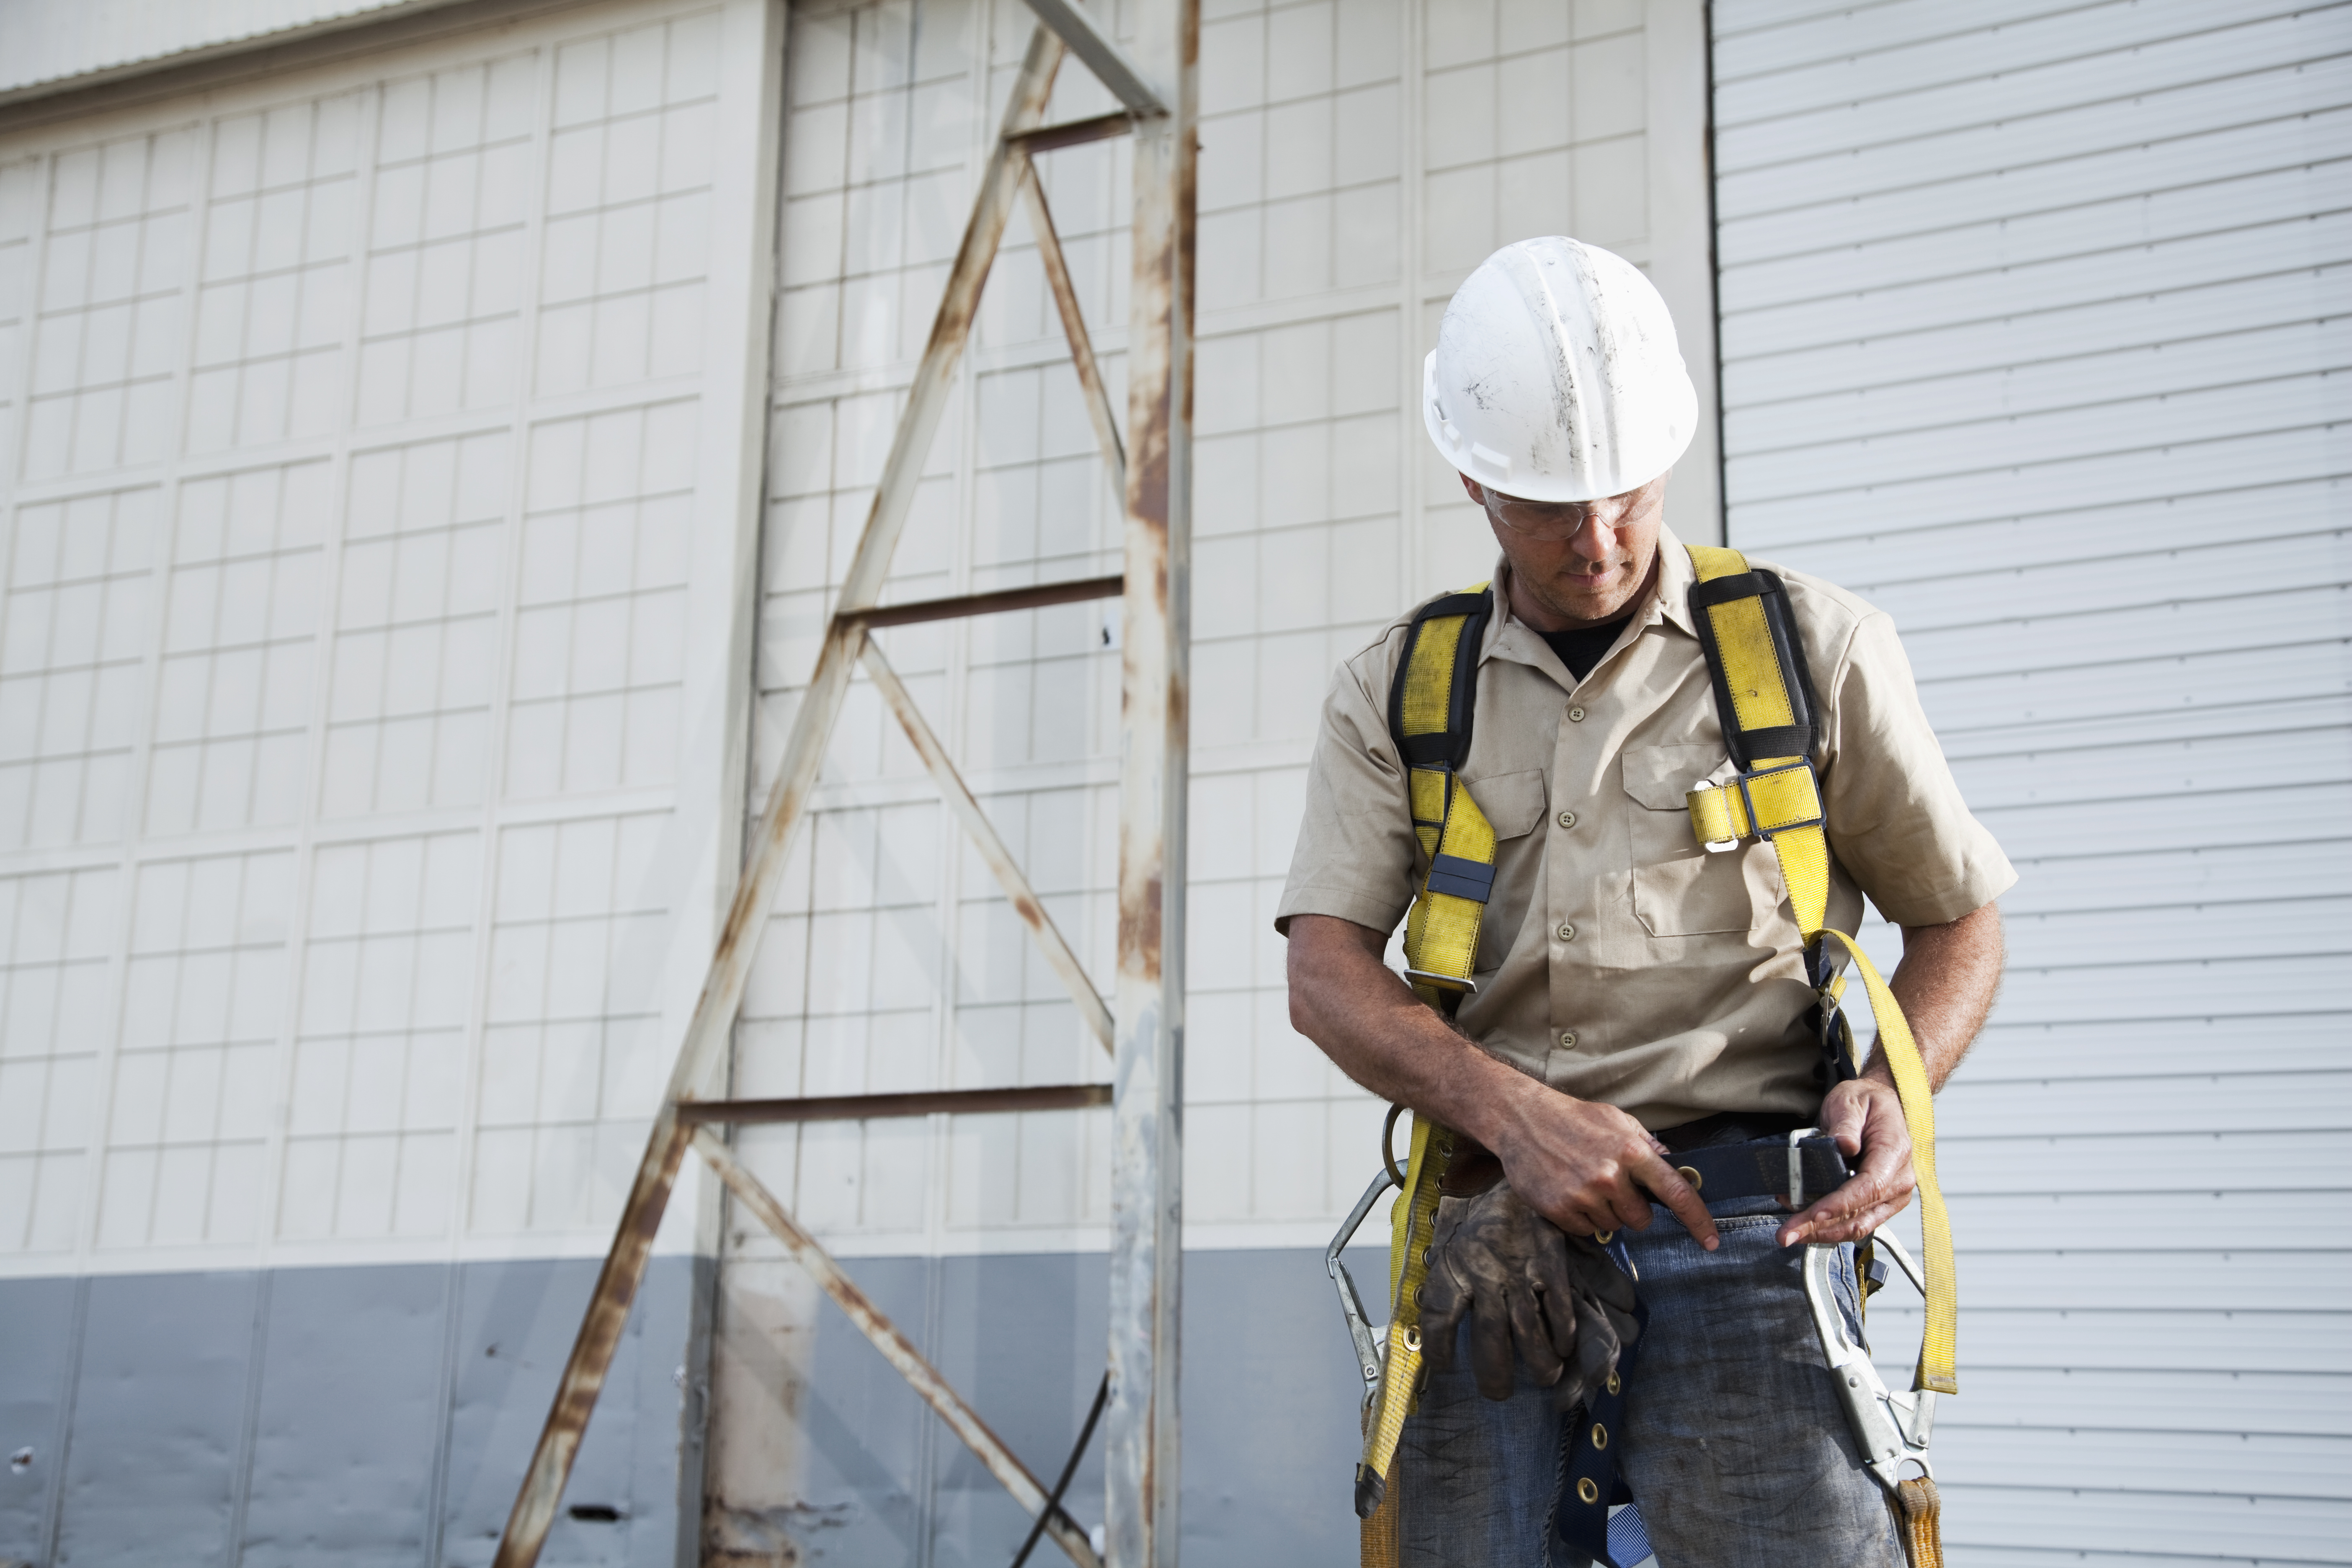 """Worker (30s) with work gloves, hard hat, safety glasses, putting on harness."" working at heights training. fall protection equipment"